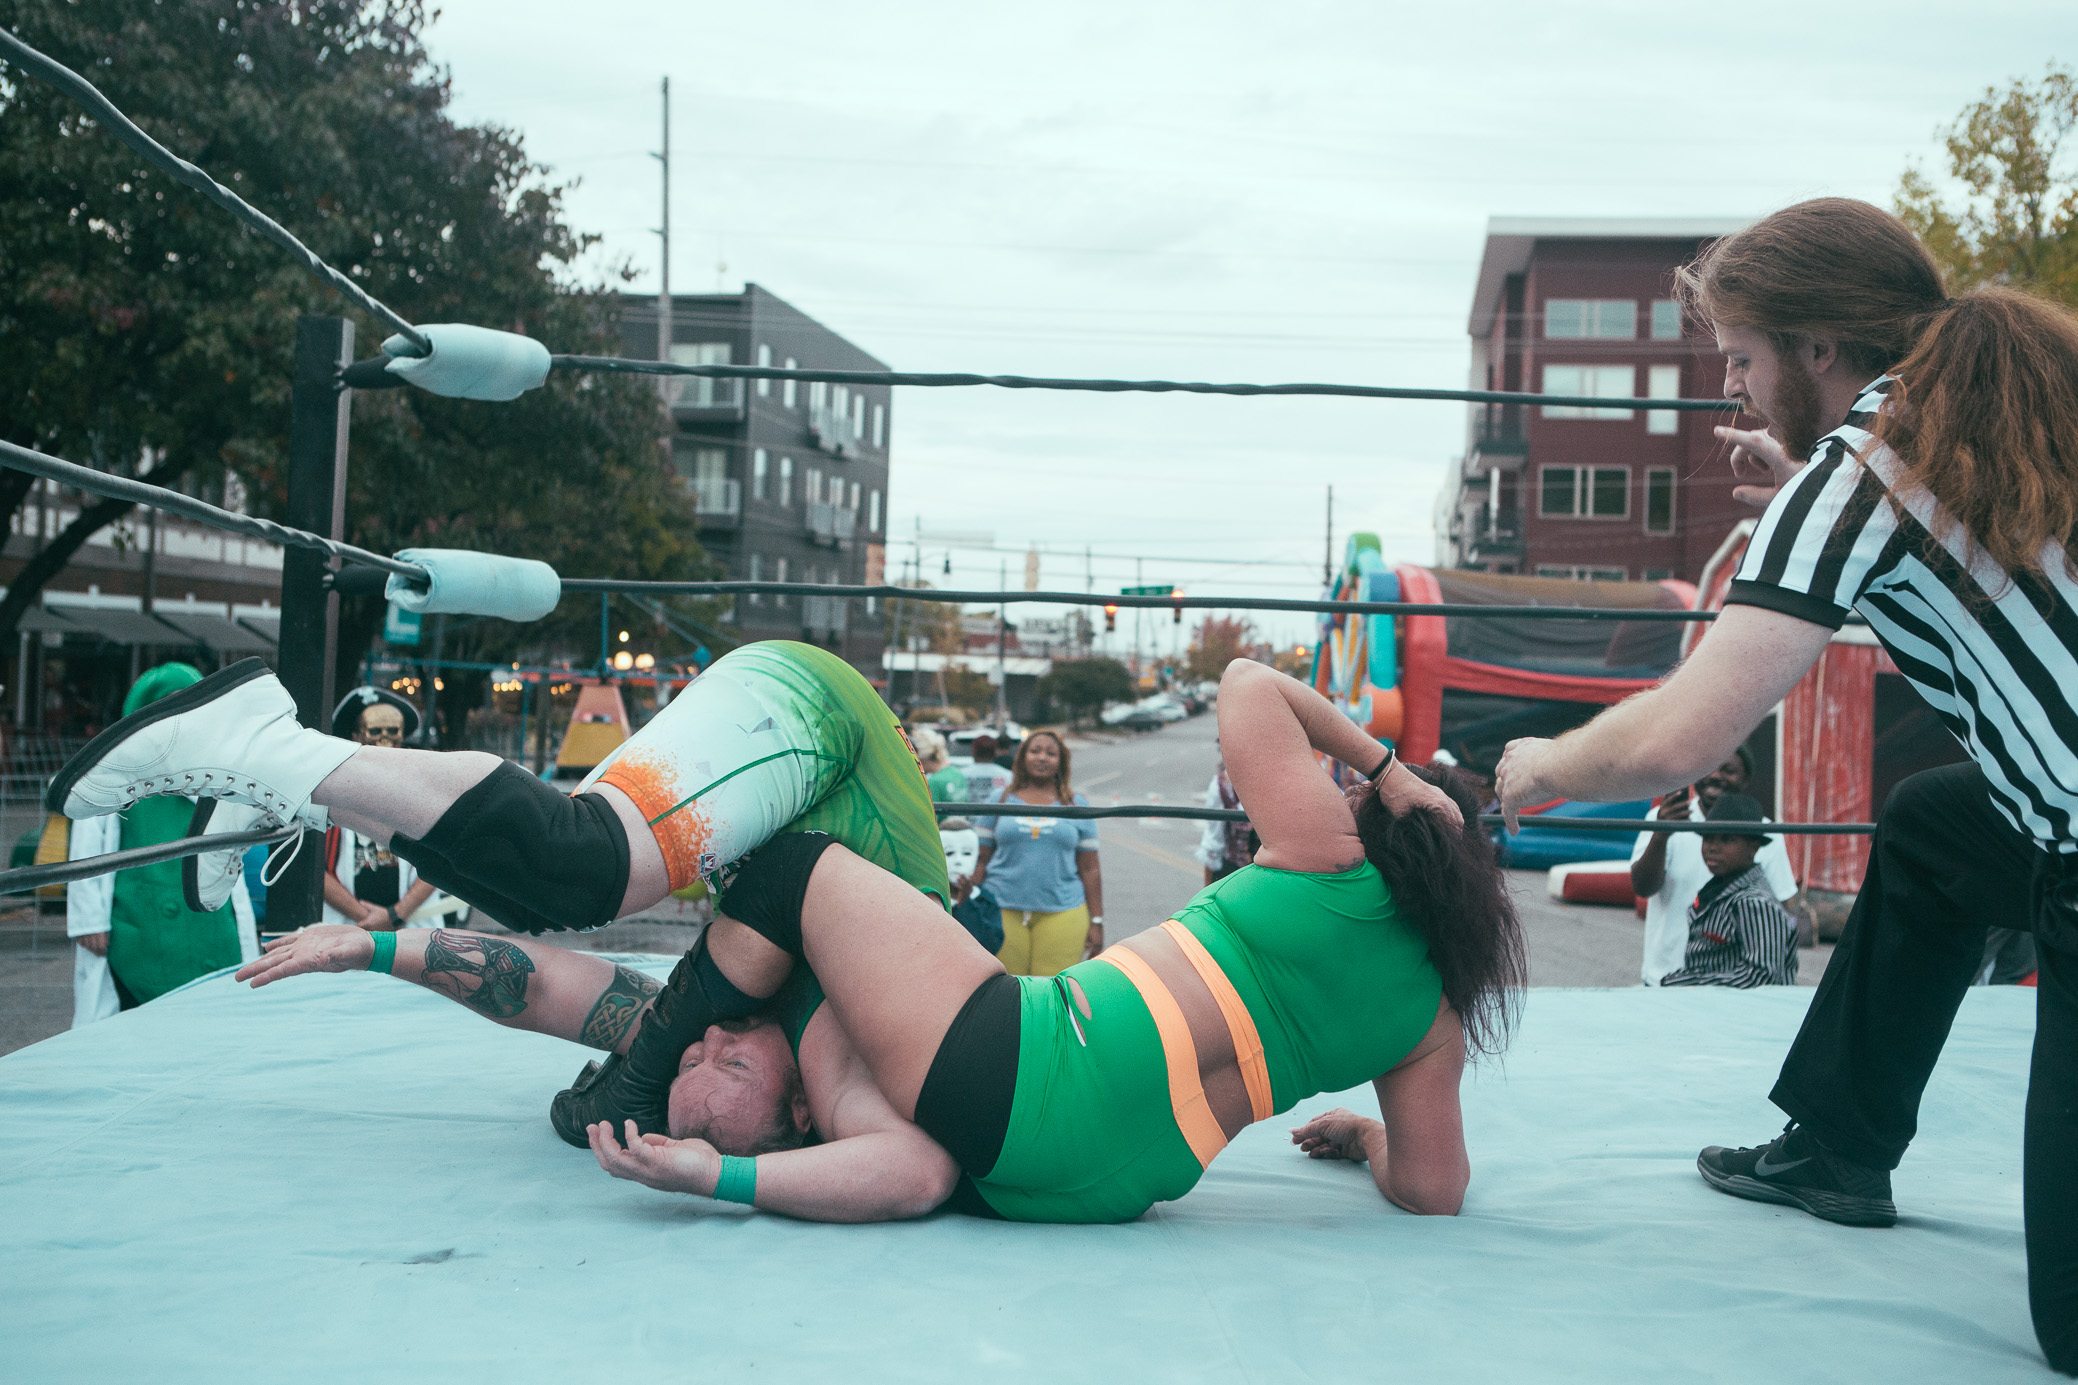 Revolutionary Independent Wrestling's show at the 3rd Annual Lakeview Spooktakular Halloween Carnival in Birmingham, Alabama on October 31st, 2018. (Photo by David A. Smith / DSmithScenes)